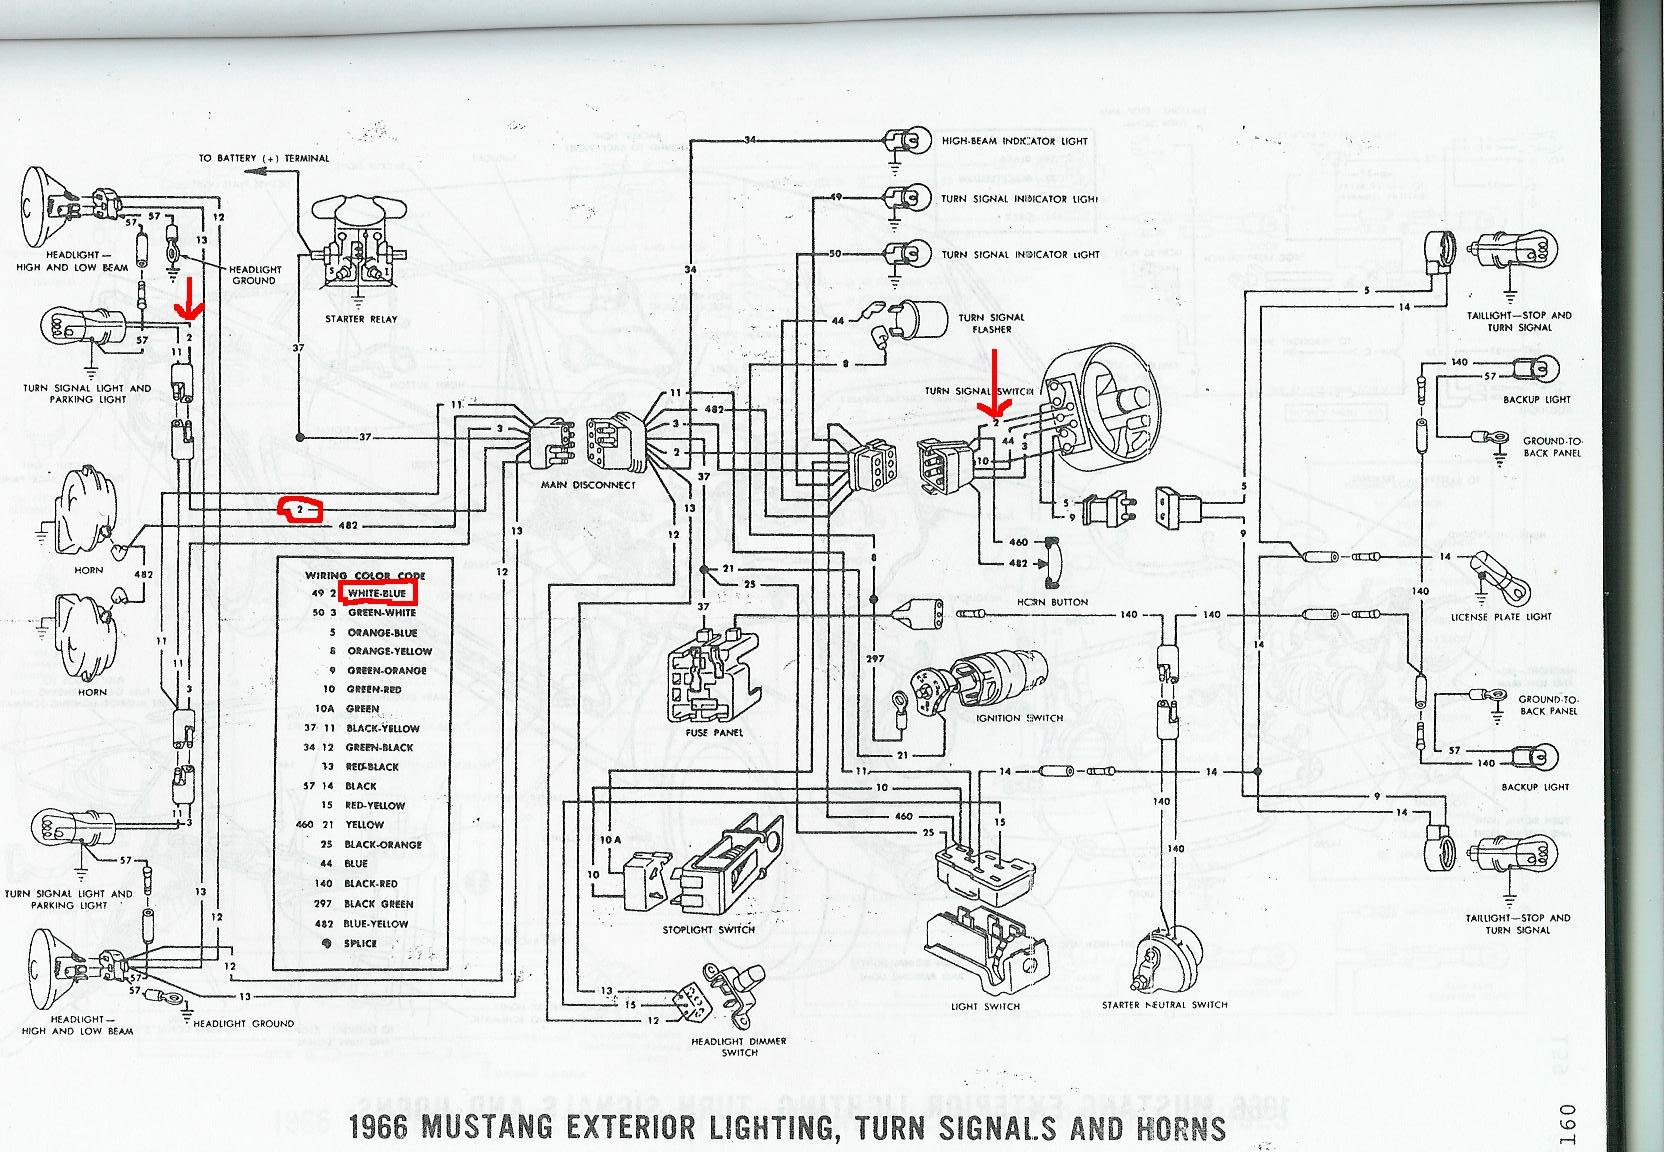 Datsun 510 Wiring Diagram, Datsun, Free Engine Image For